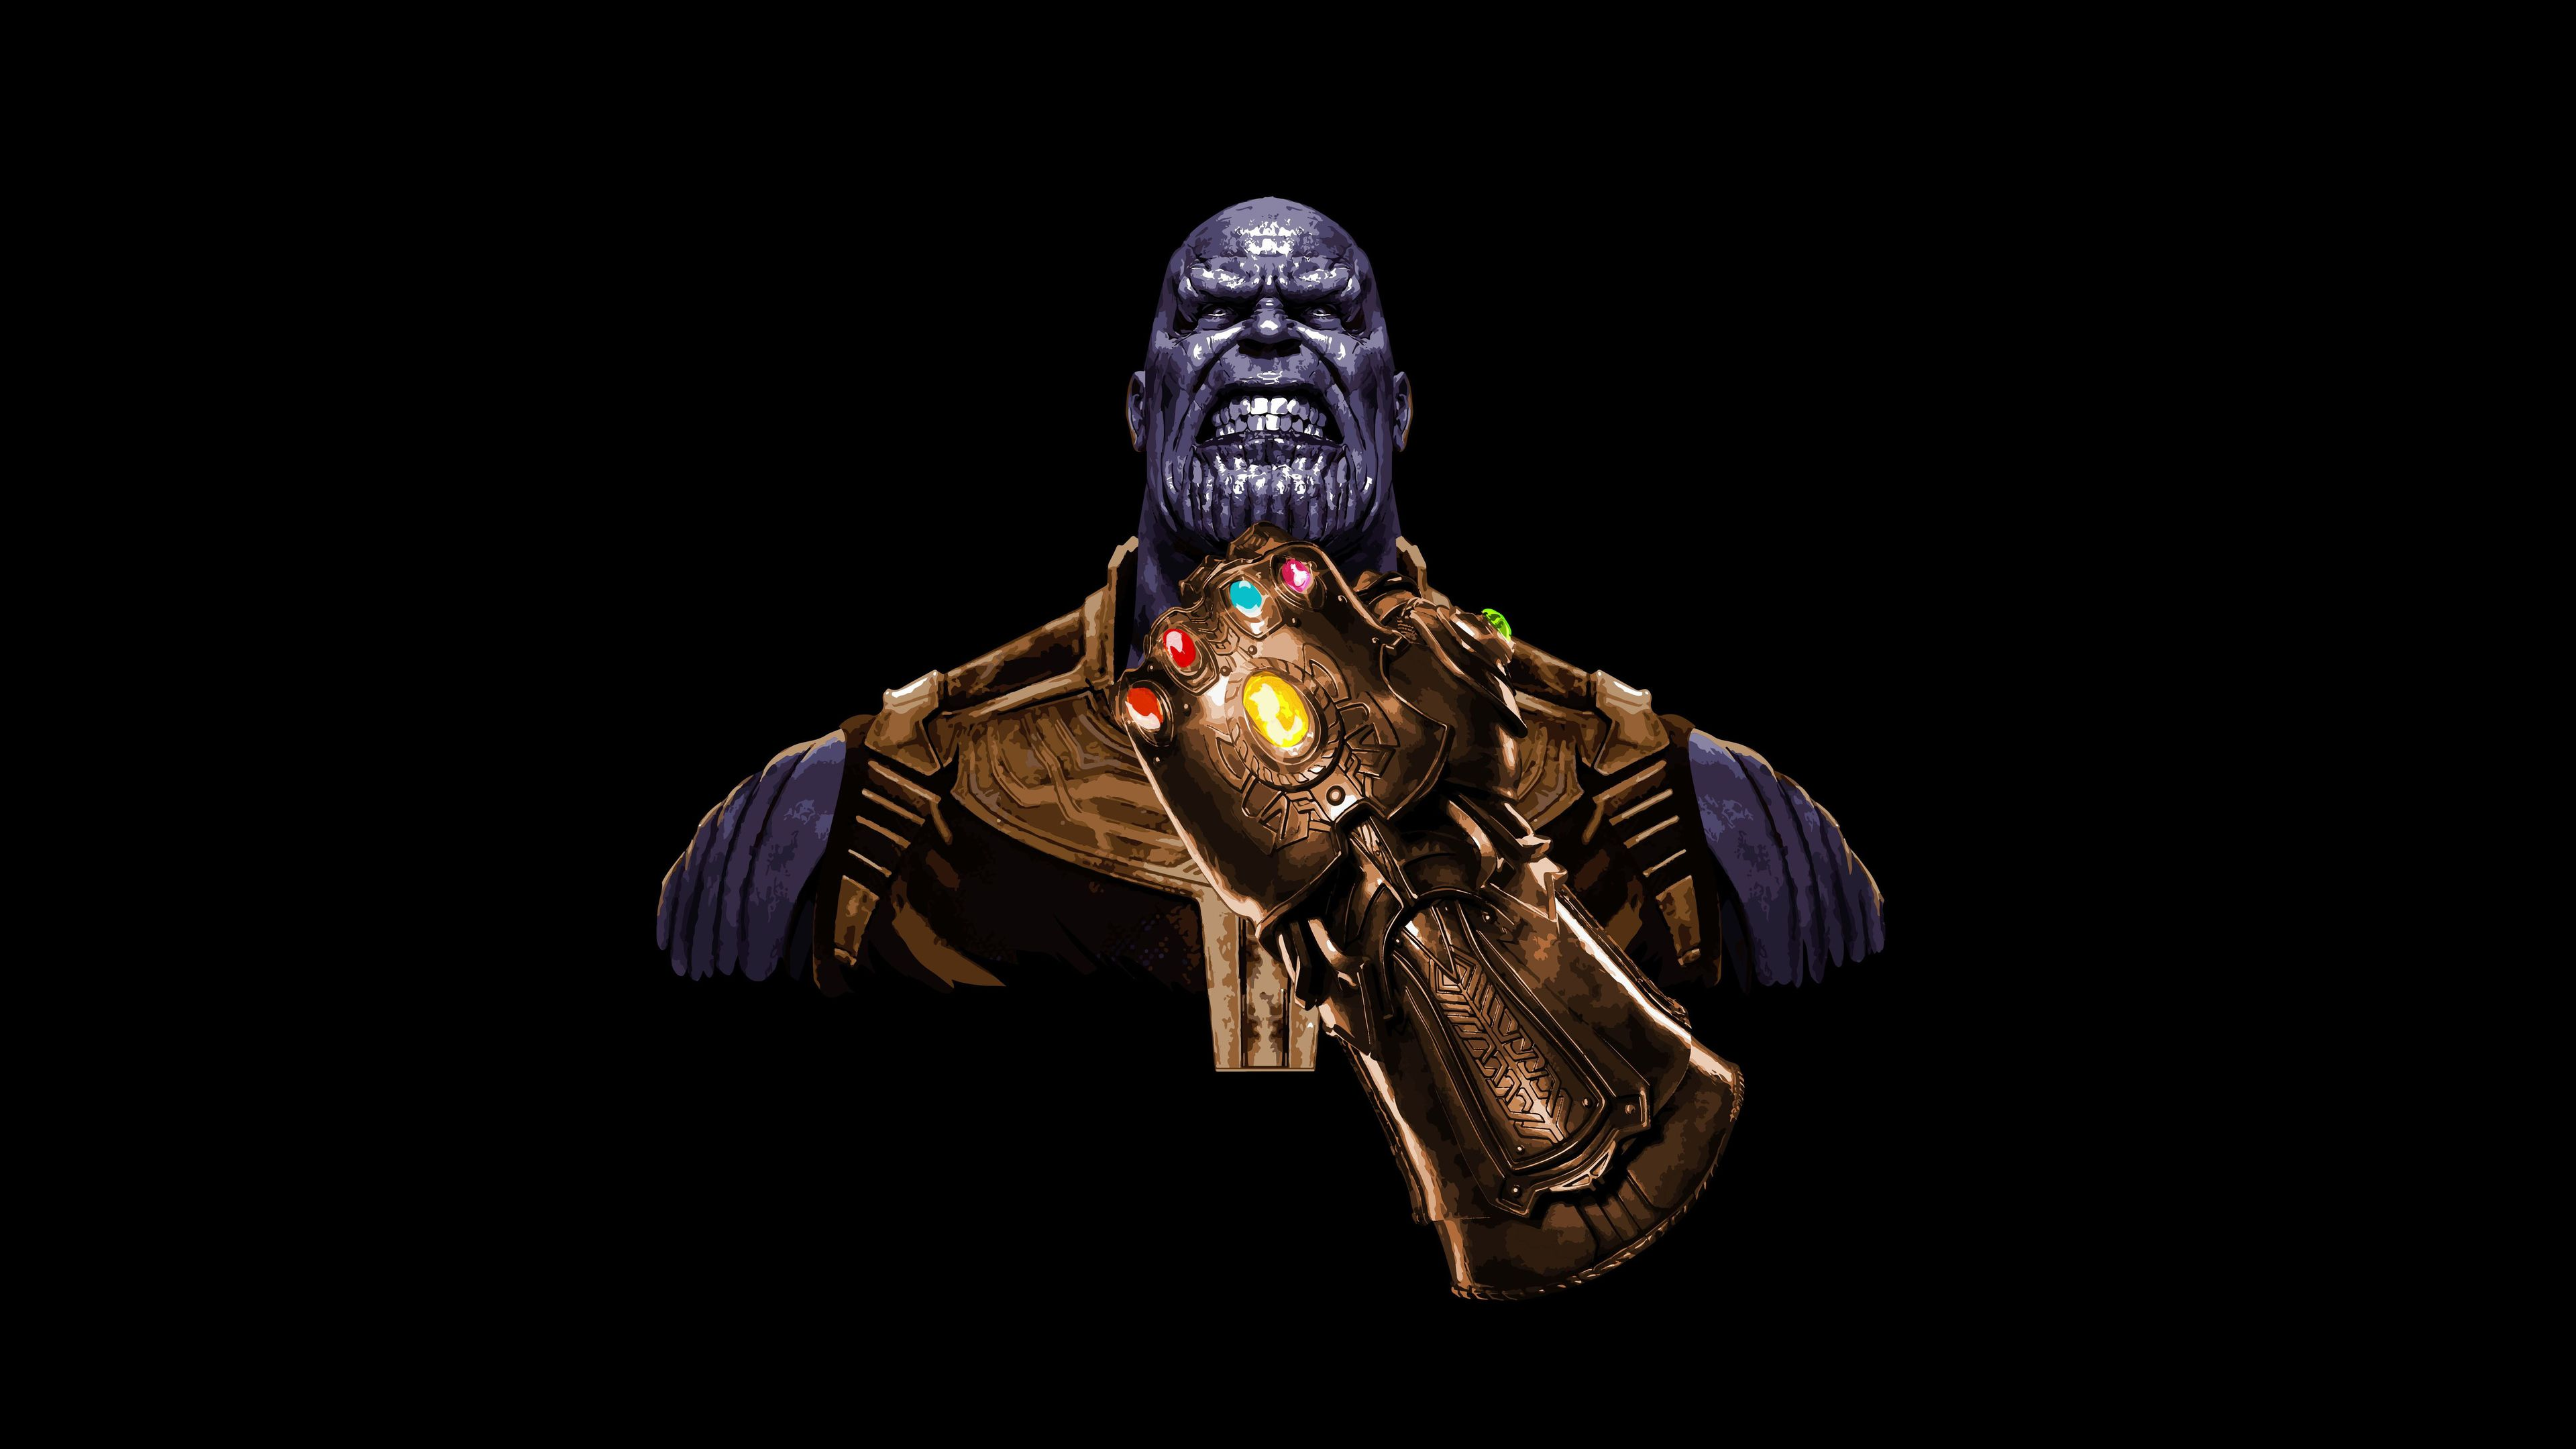 Thanos 4k thanoswallpapers, superheroes wallpapers, hd